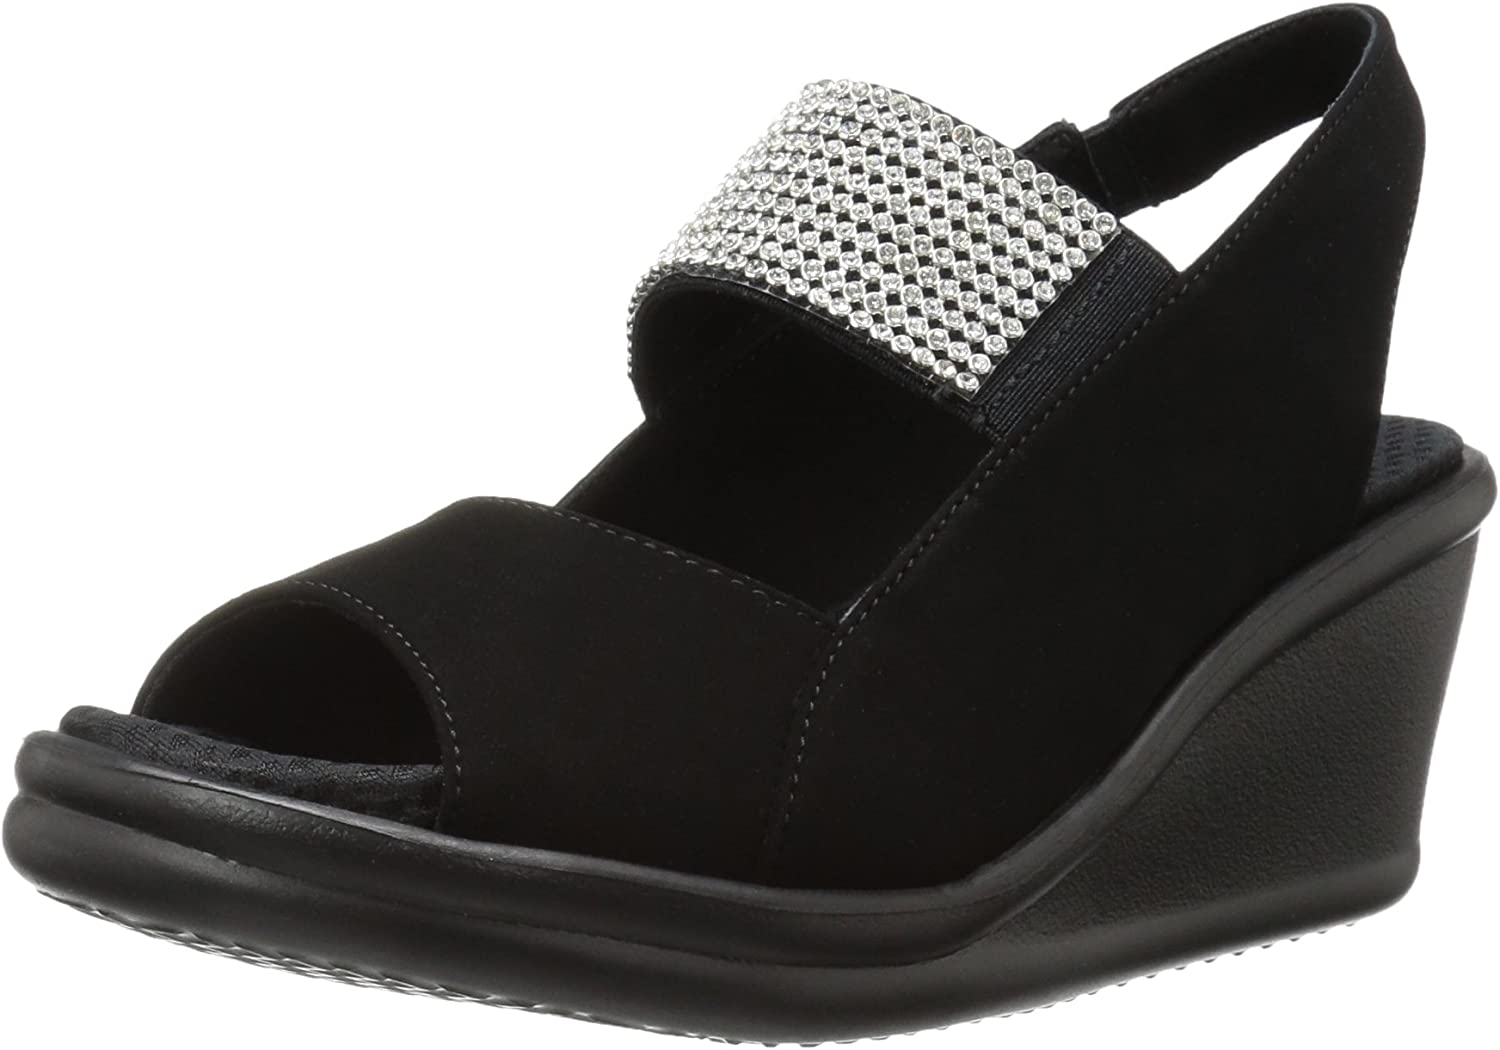 Skechers Womens Rumblers Sparkle on Wedge Sandal